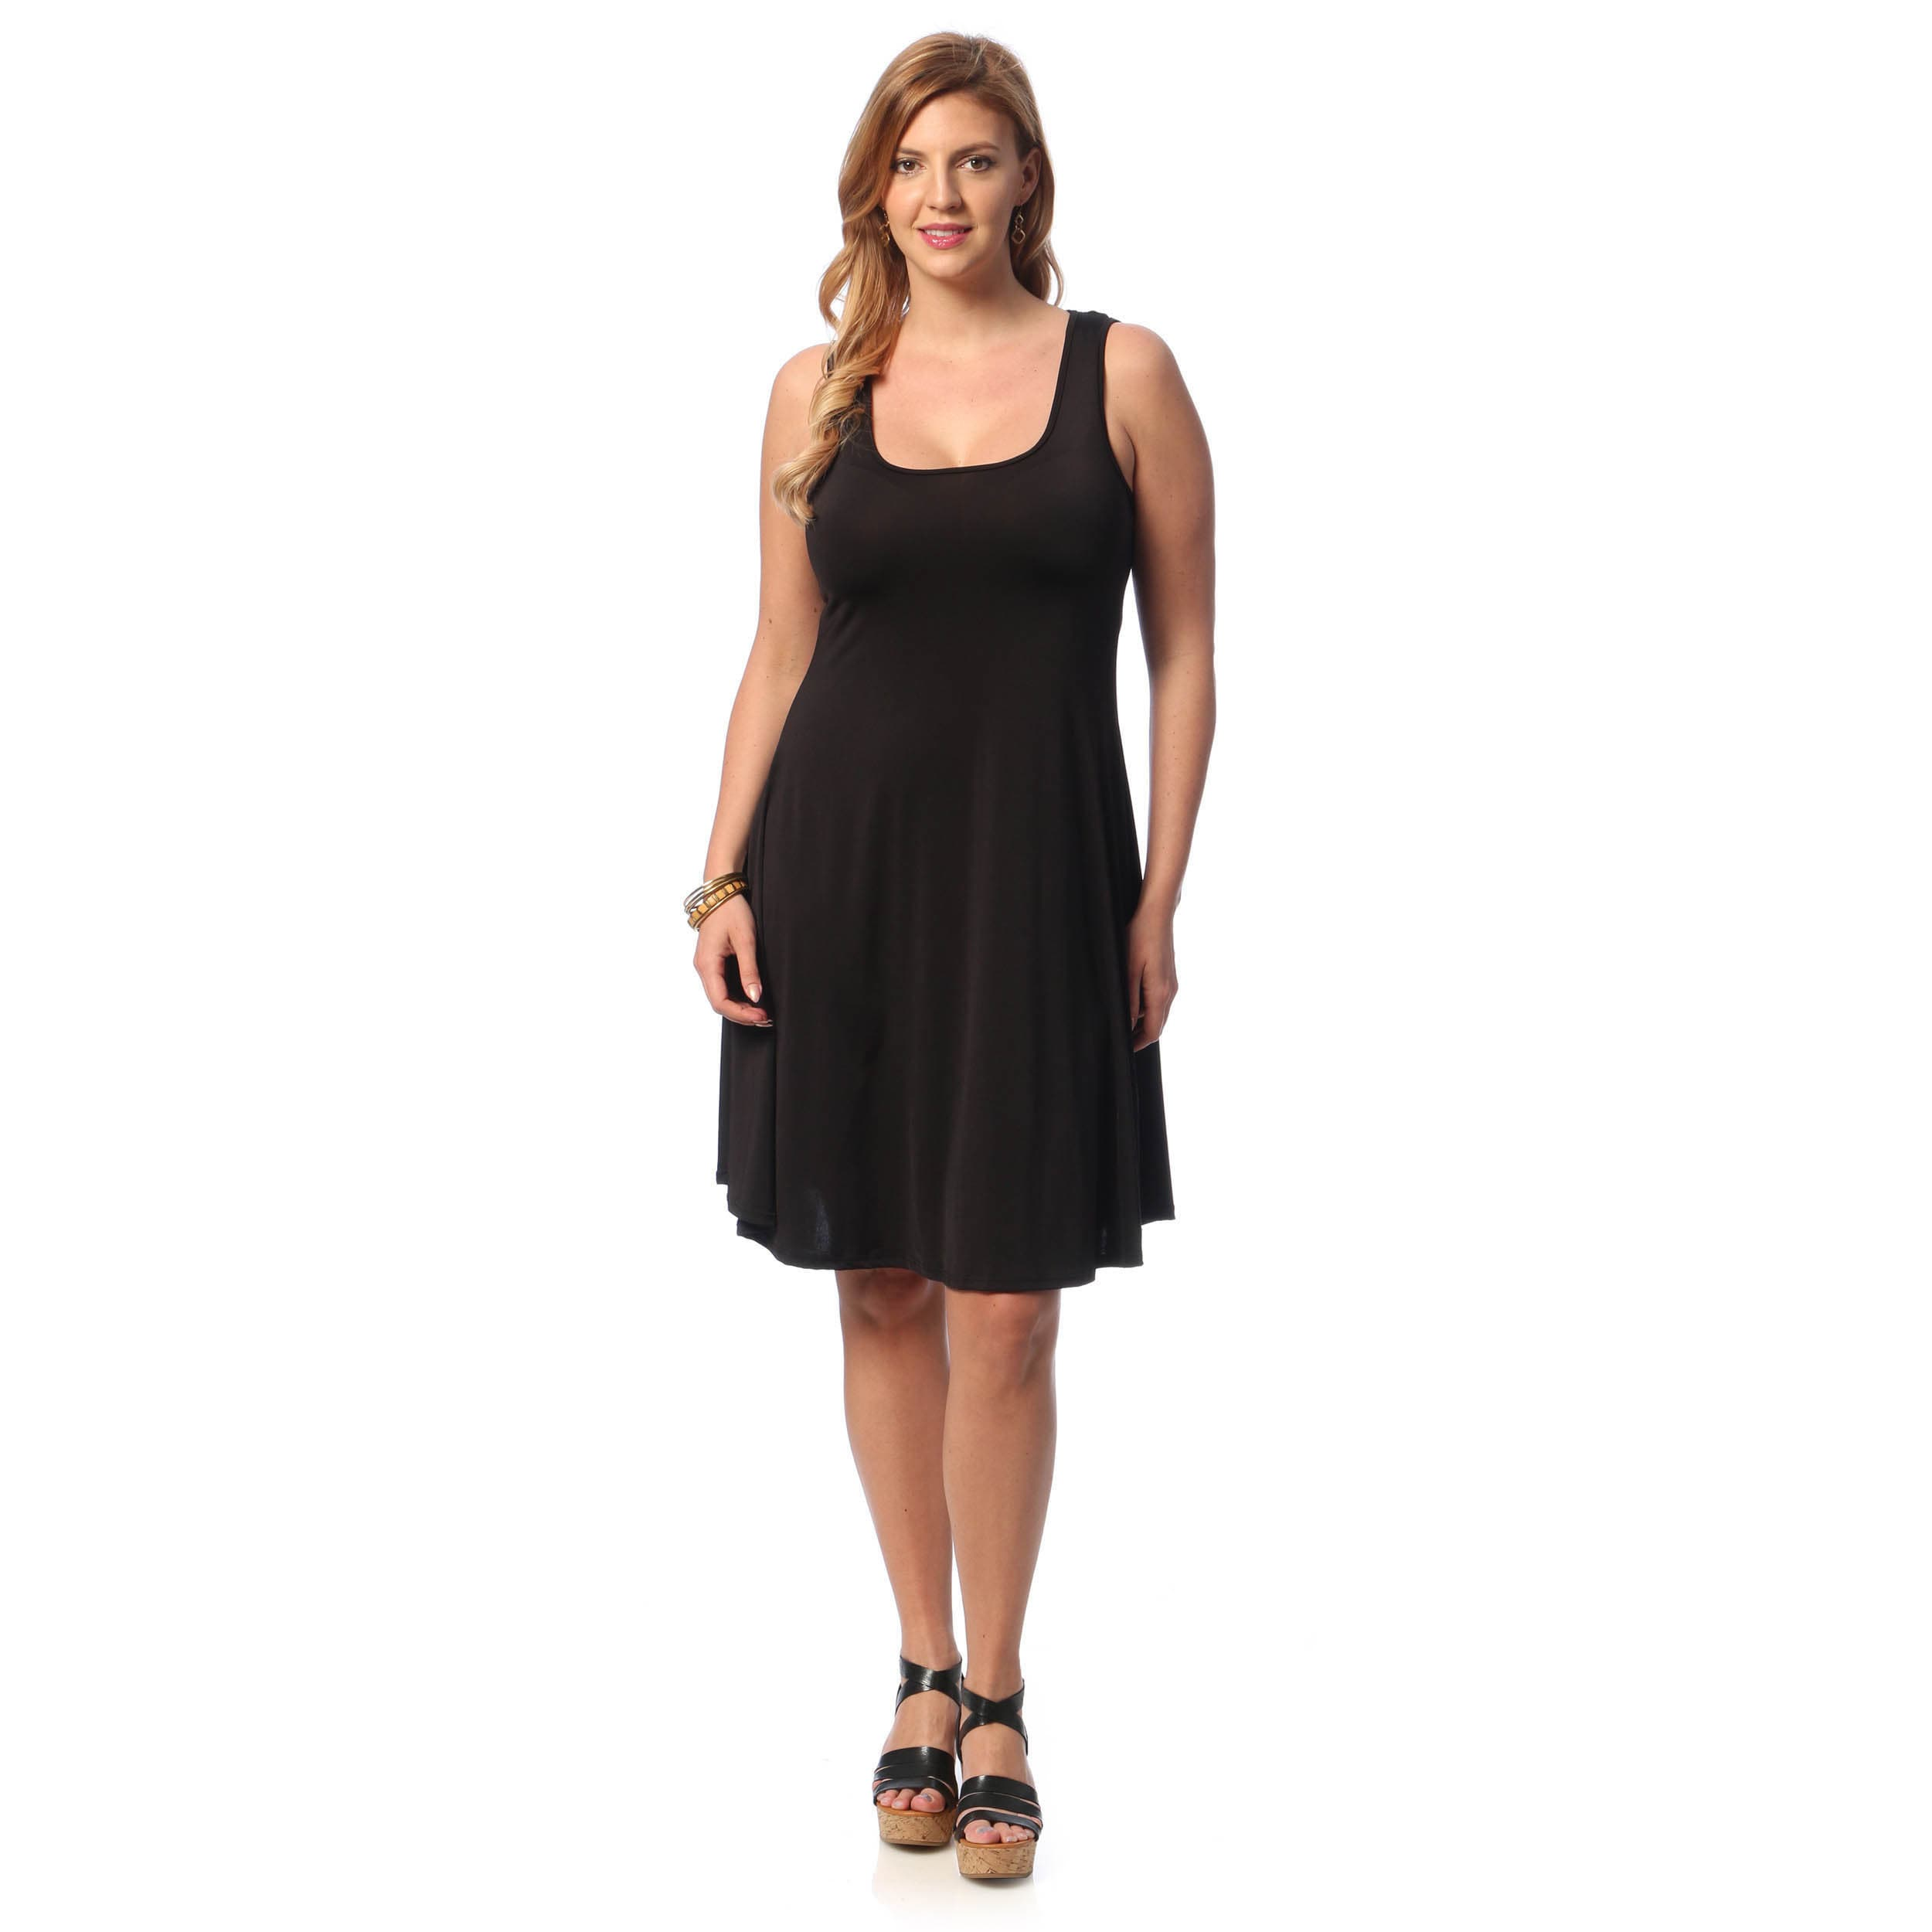 Buy Polyester Women\'s Plus-Size Dresses Online at Overstock | Our ...